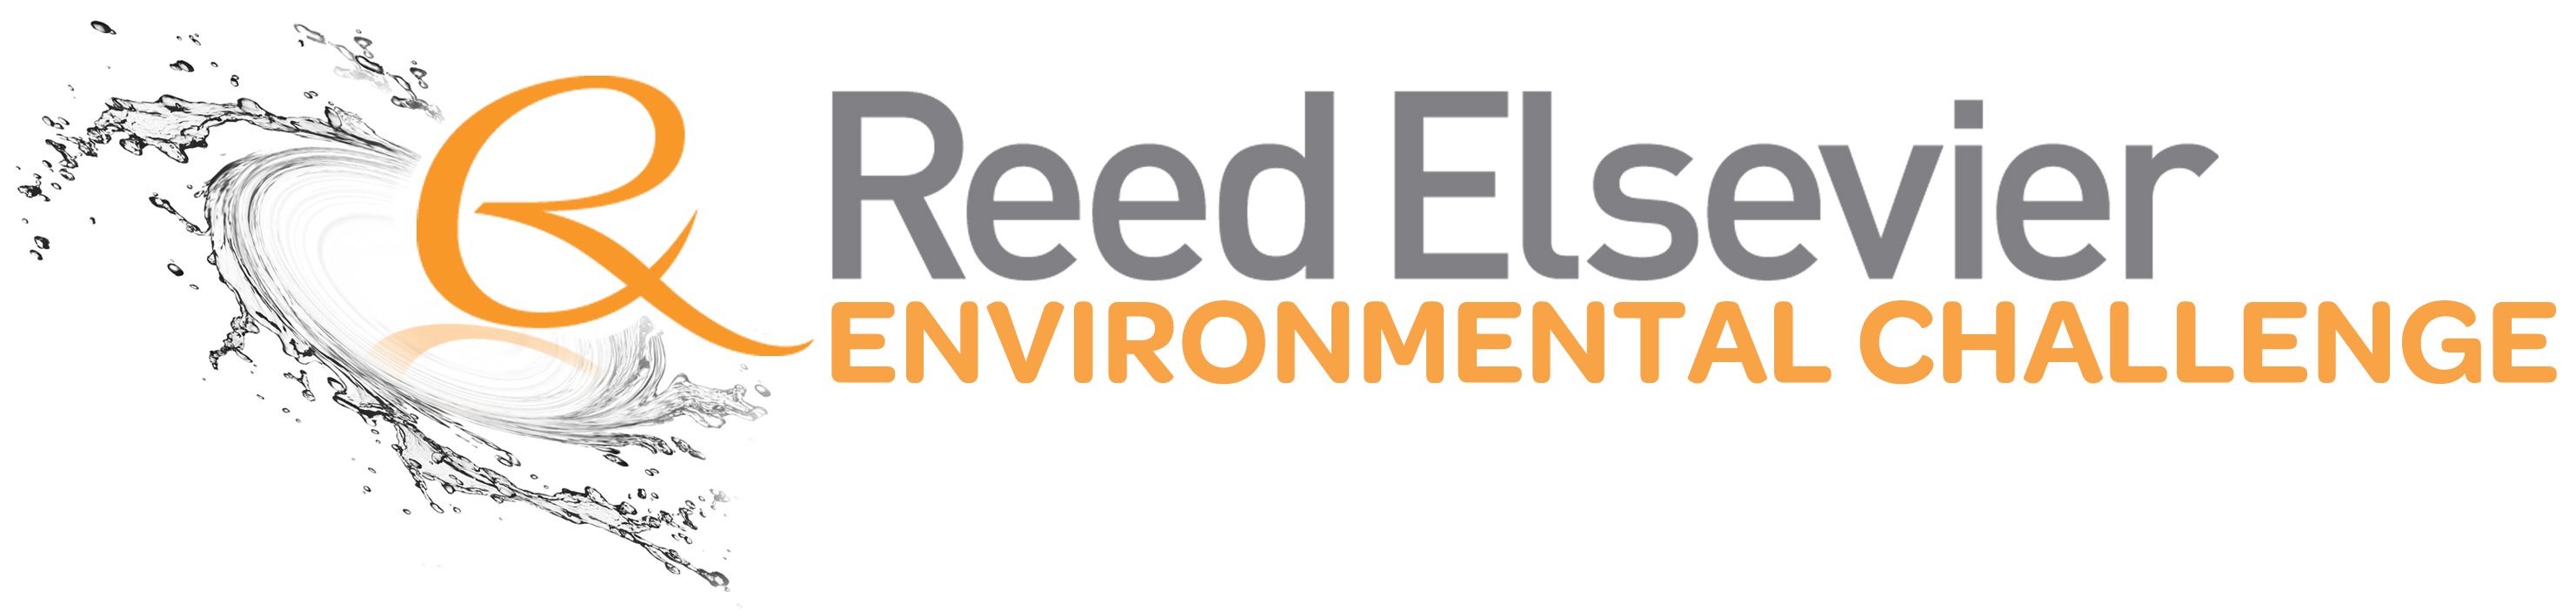 Reed Elsevier Environmental Challenge